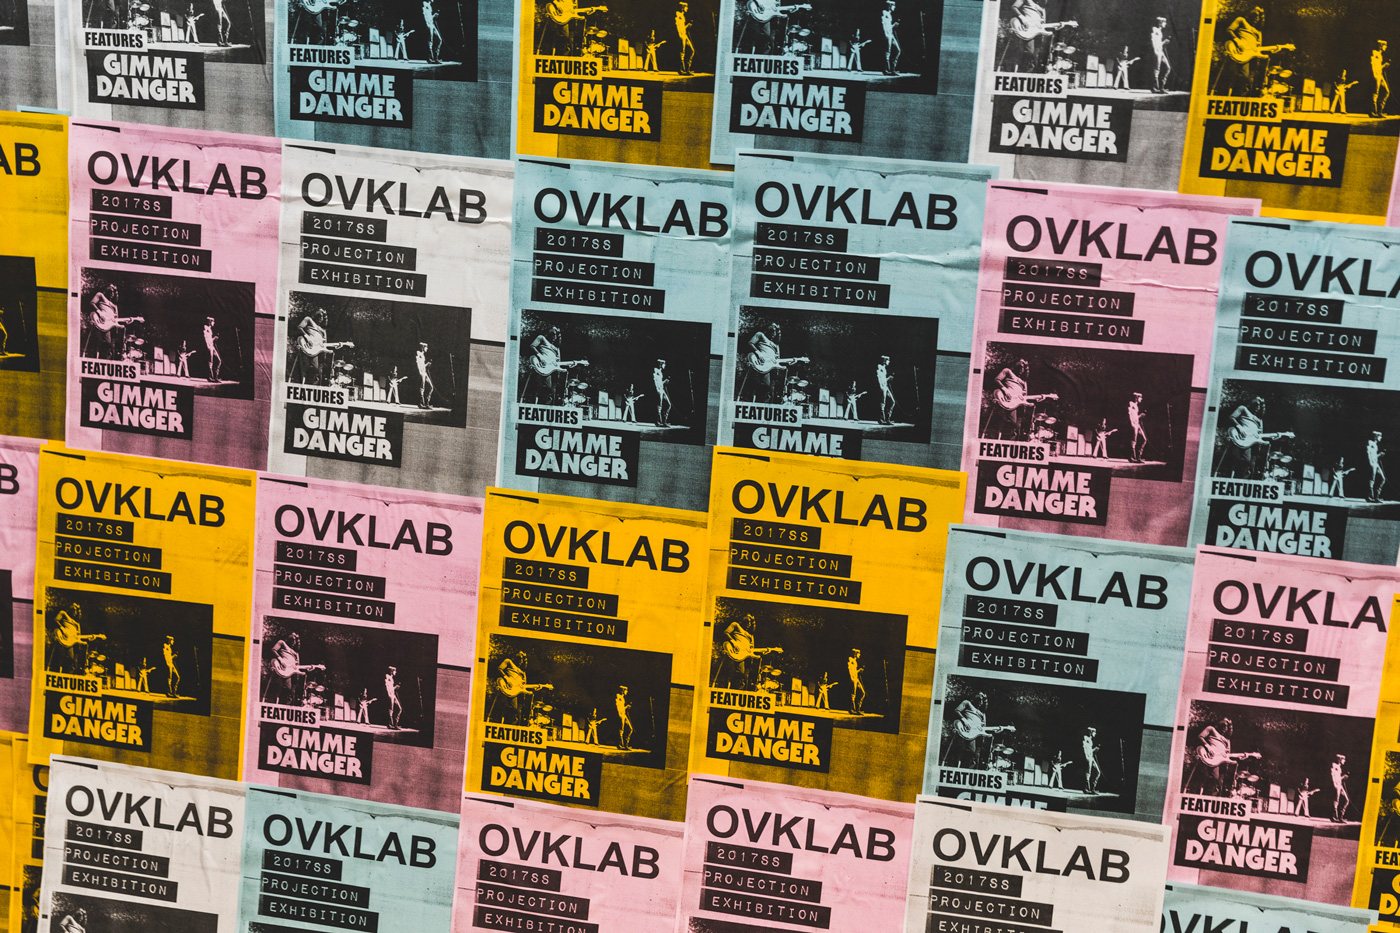 OVKLAB_Projection_Exhibtion_1